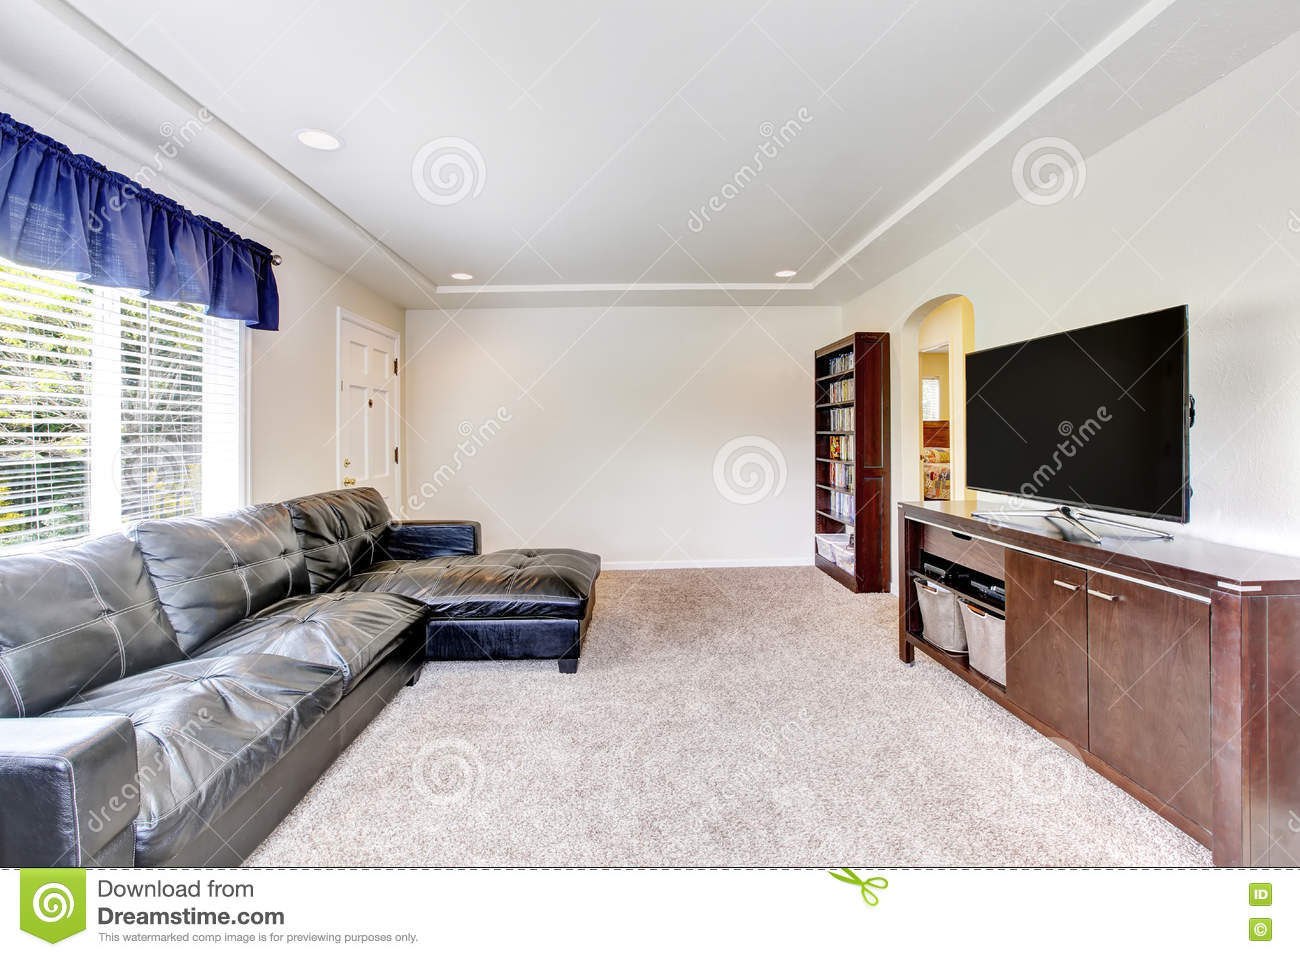 Cozy Living Room Interior With Black Leather Couch And Tv Set Stock ...